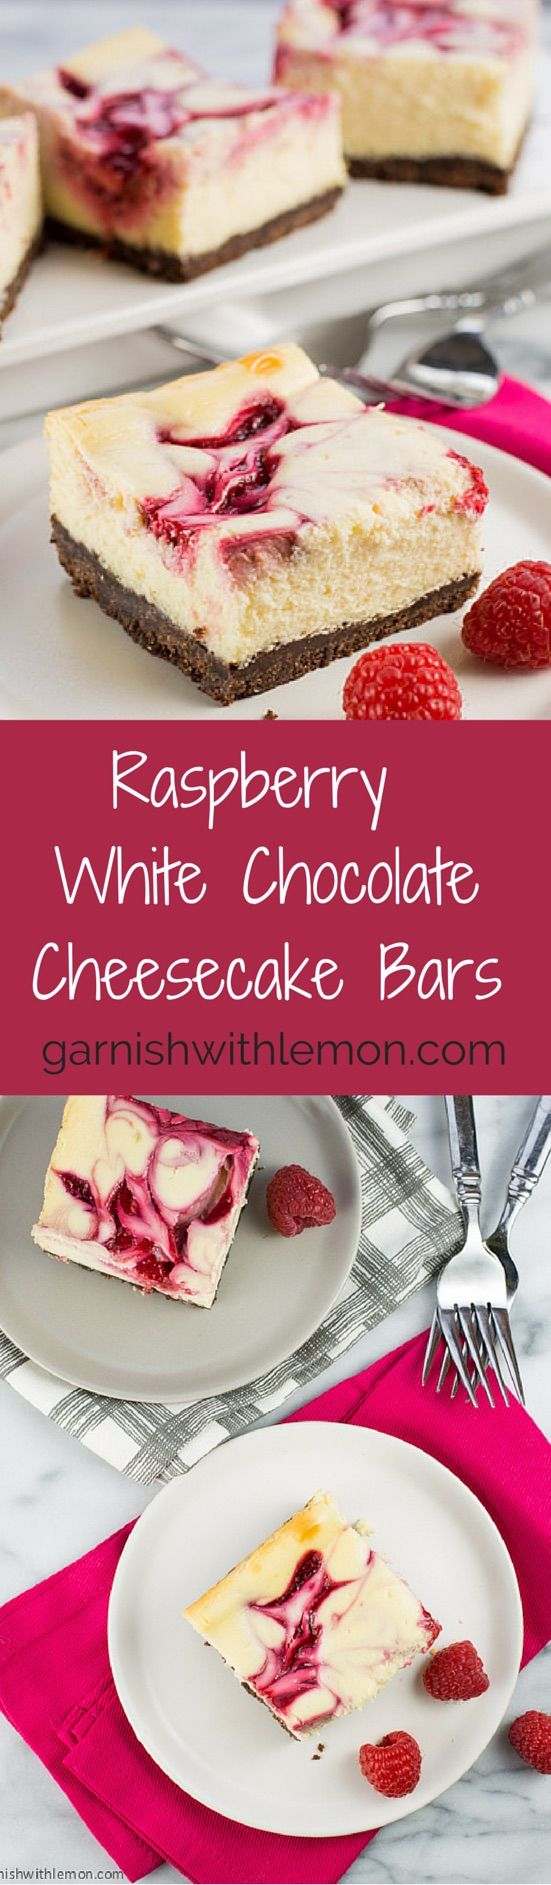 Raspberry White Chocolate Cheesecake Bars ~ http://www.garnishwithlemon.com